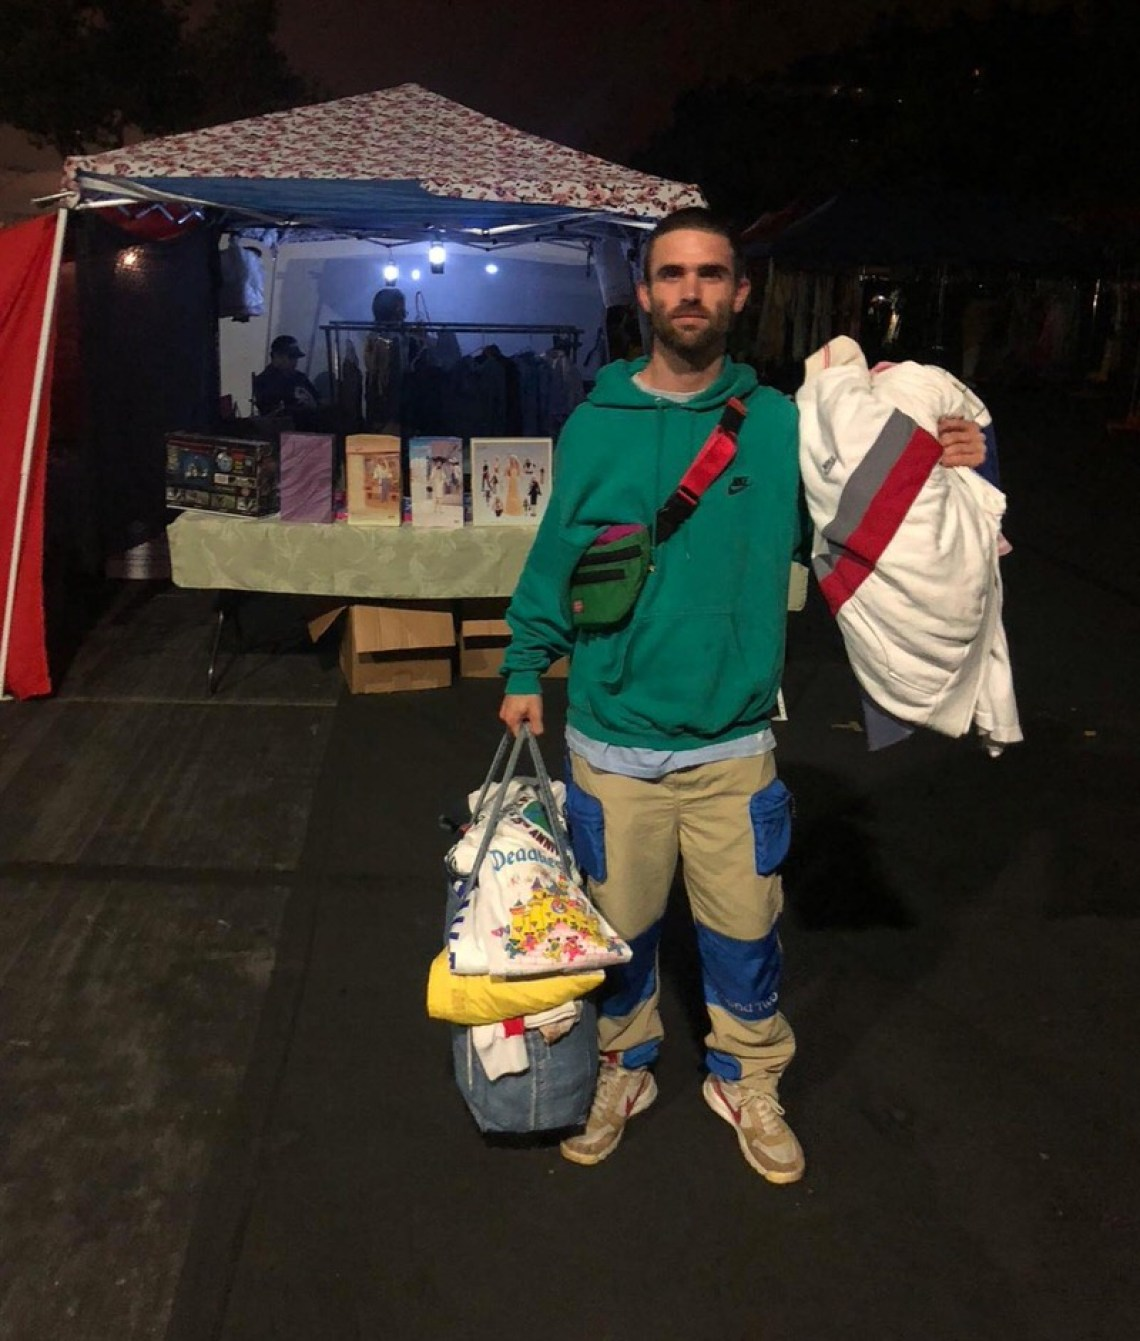 Sean Wotherspoon in the Tom Sachs x Nike Mars Yard